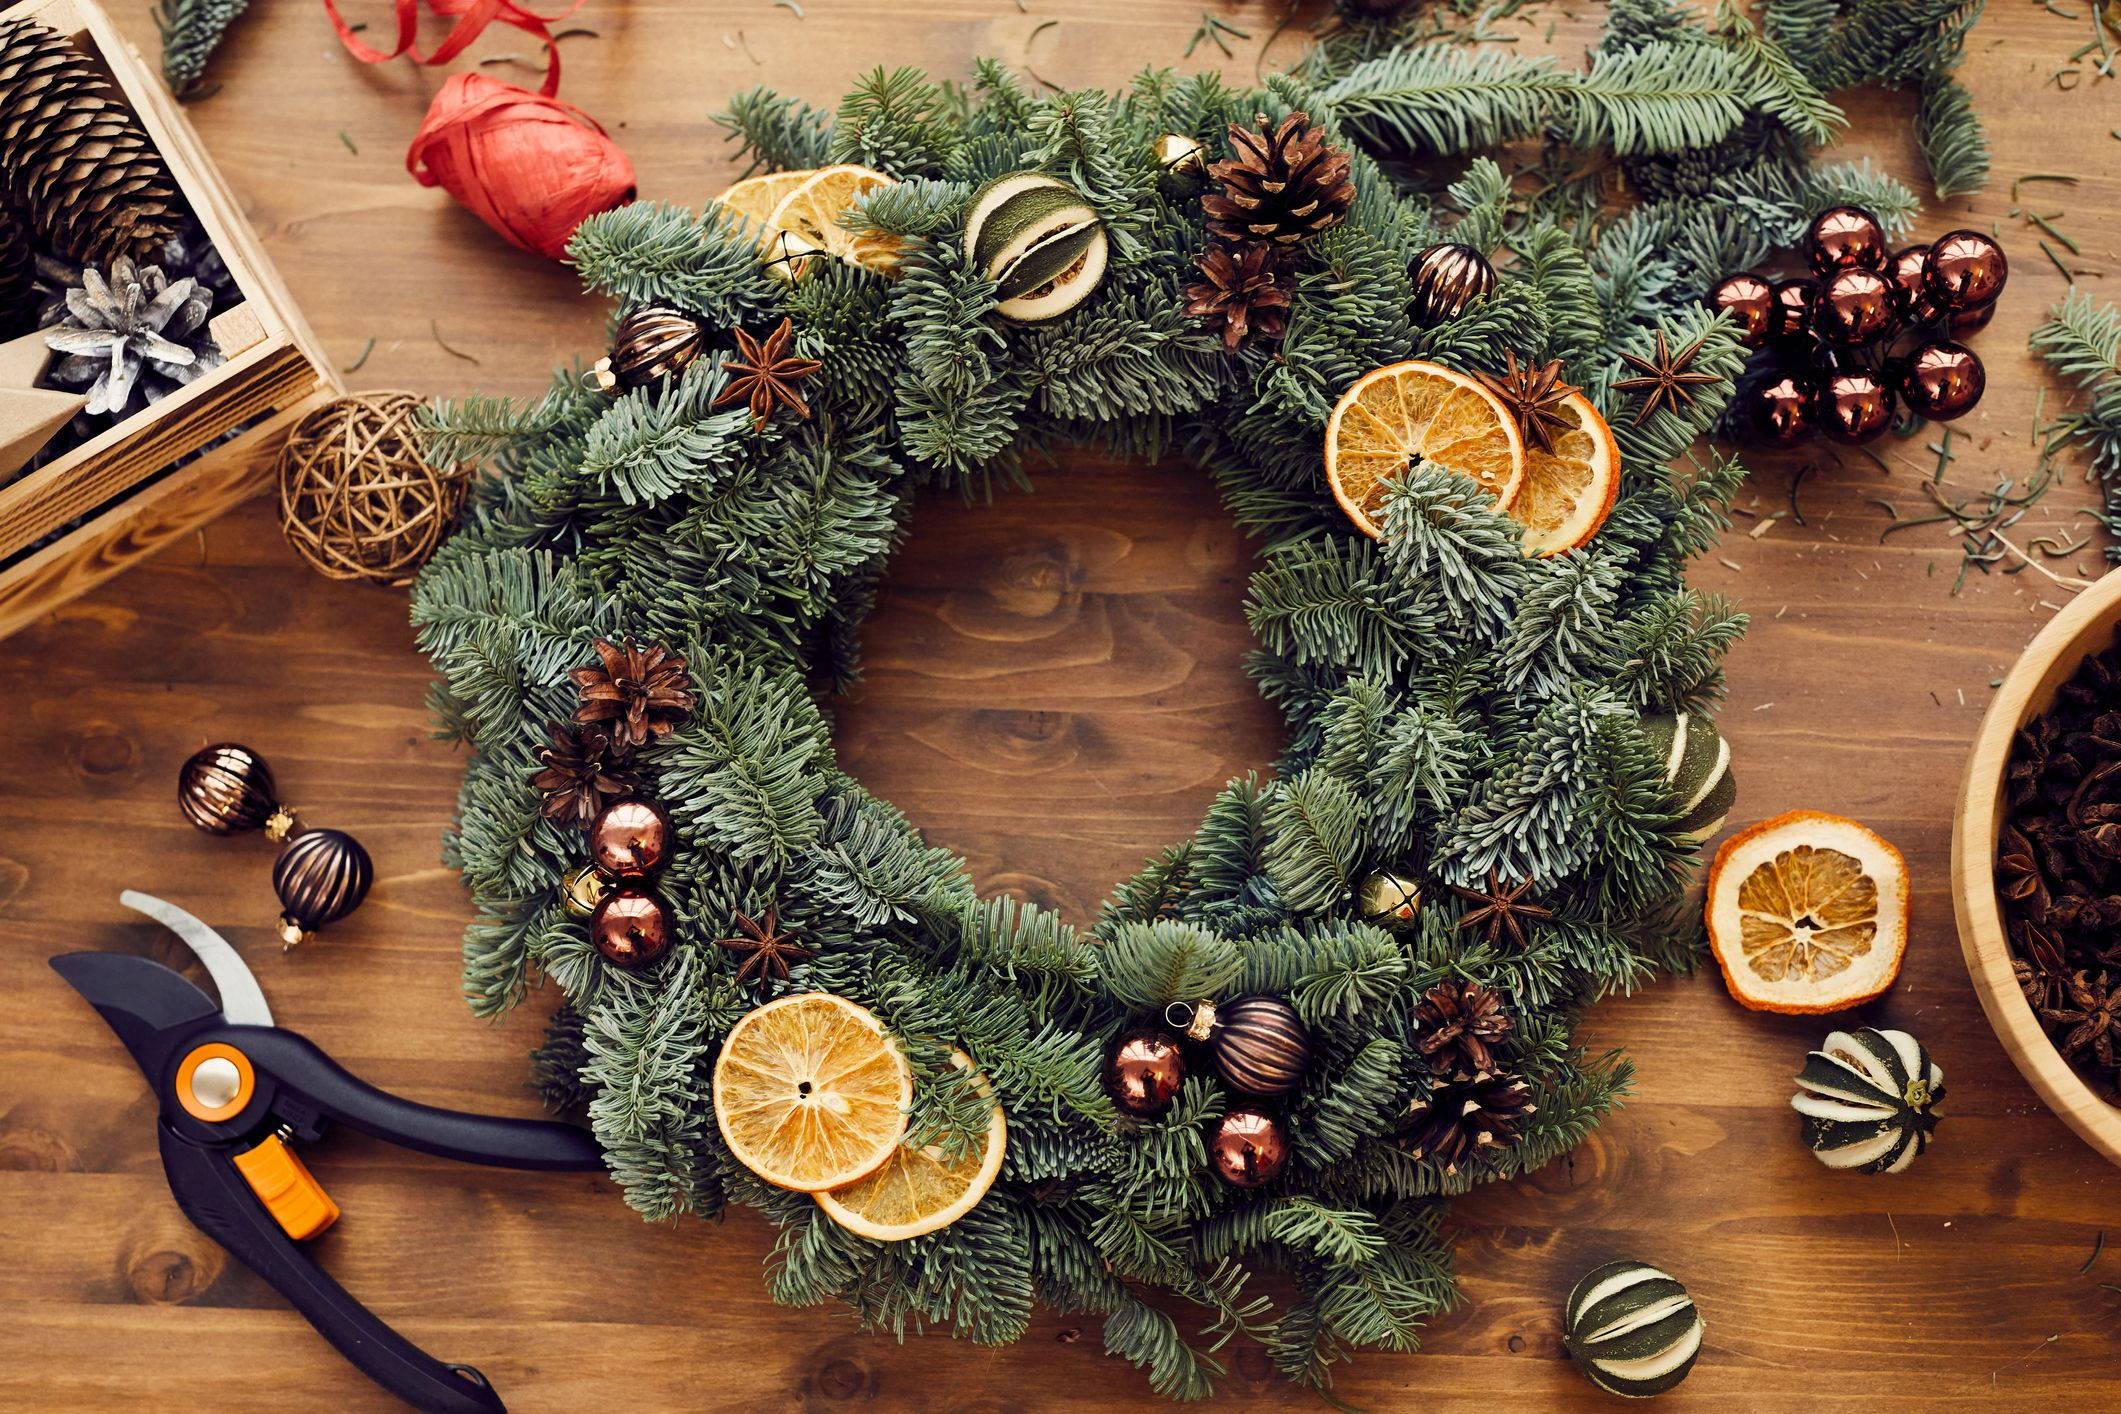 30 Diy Rustic Christmas Decor Ideas Best Country Christmas Decorations